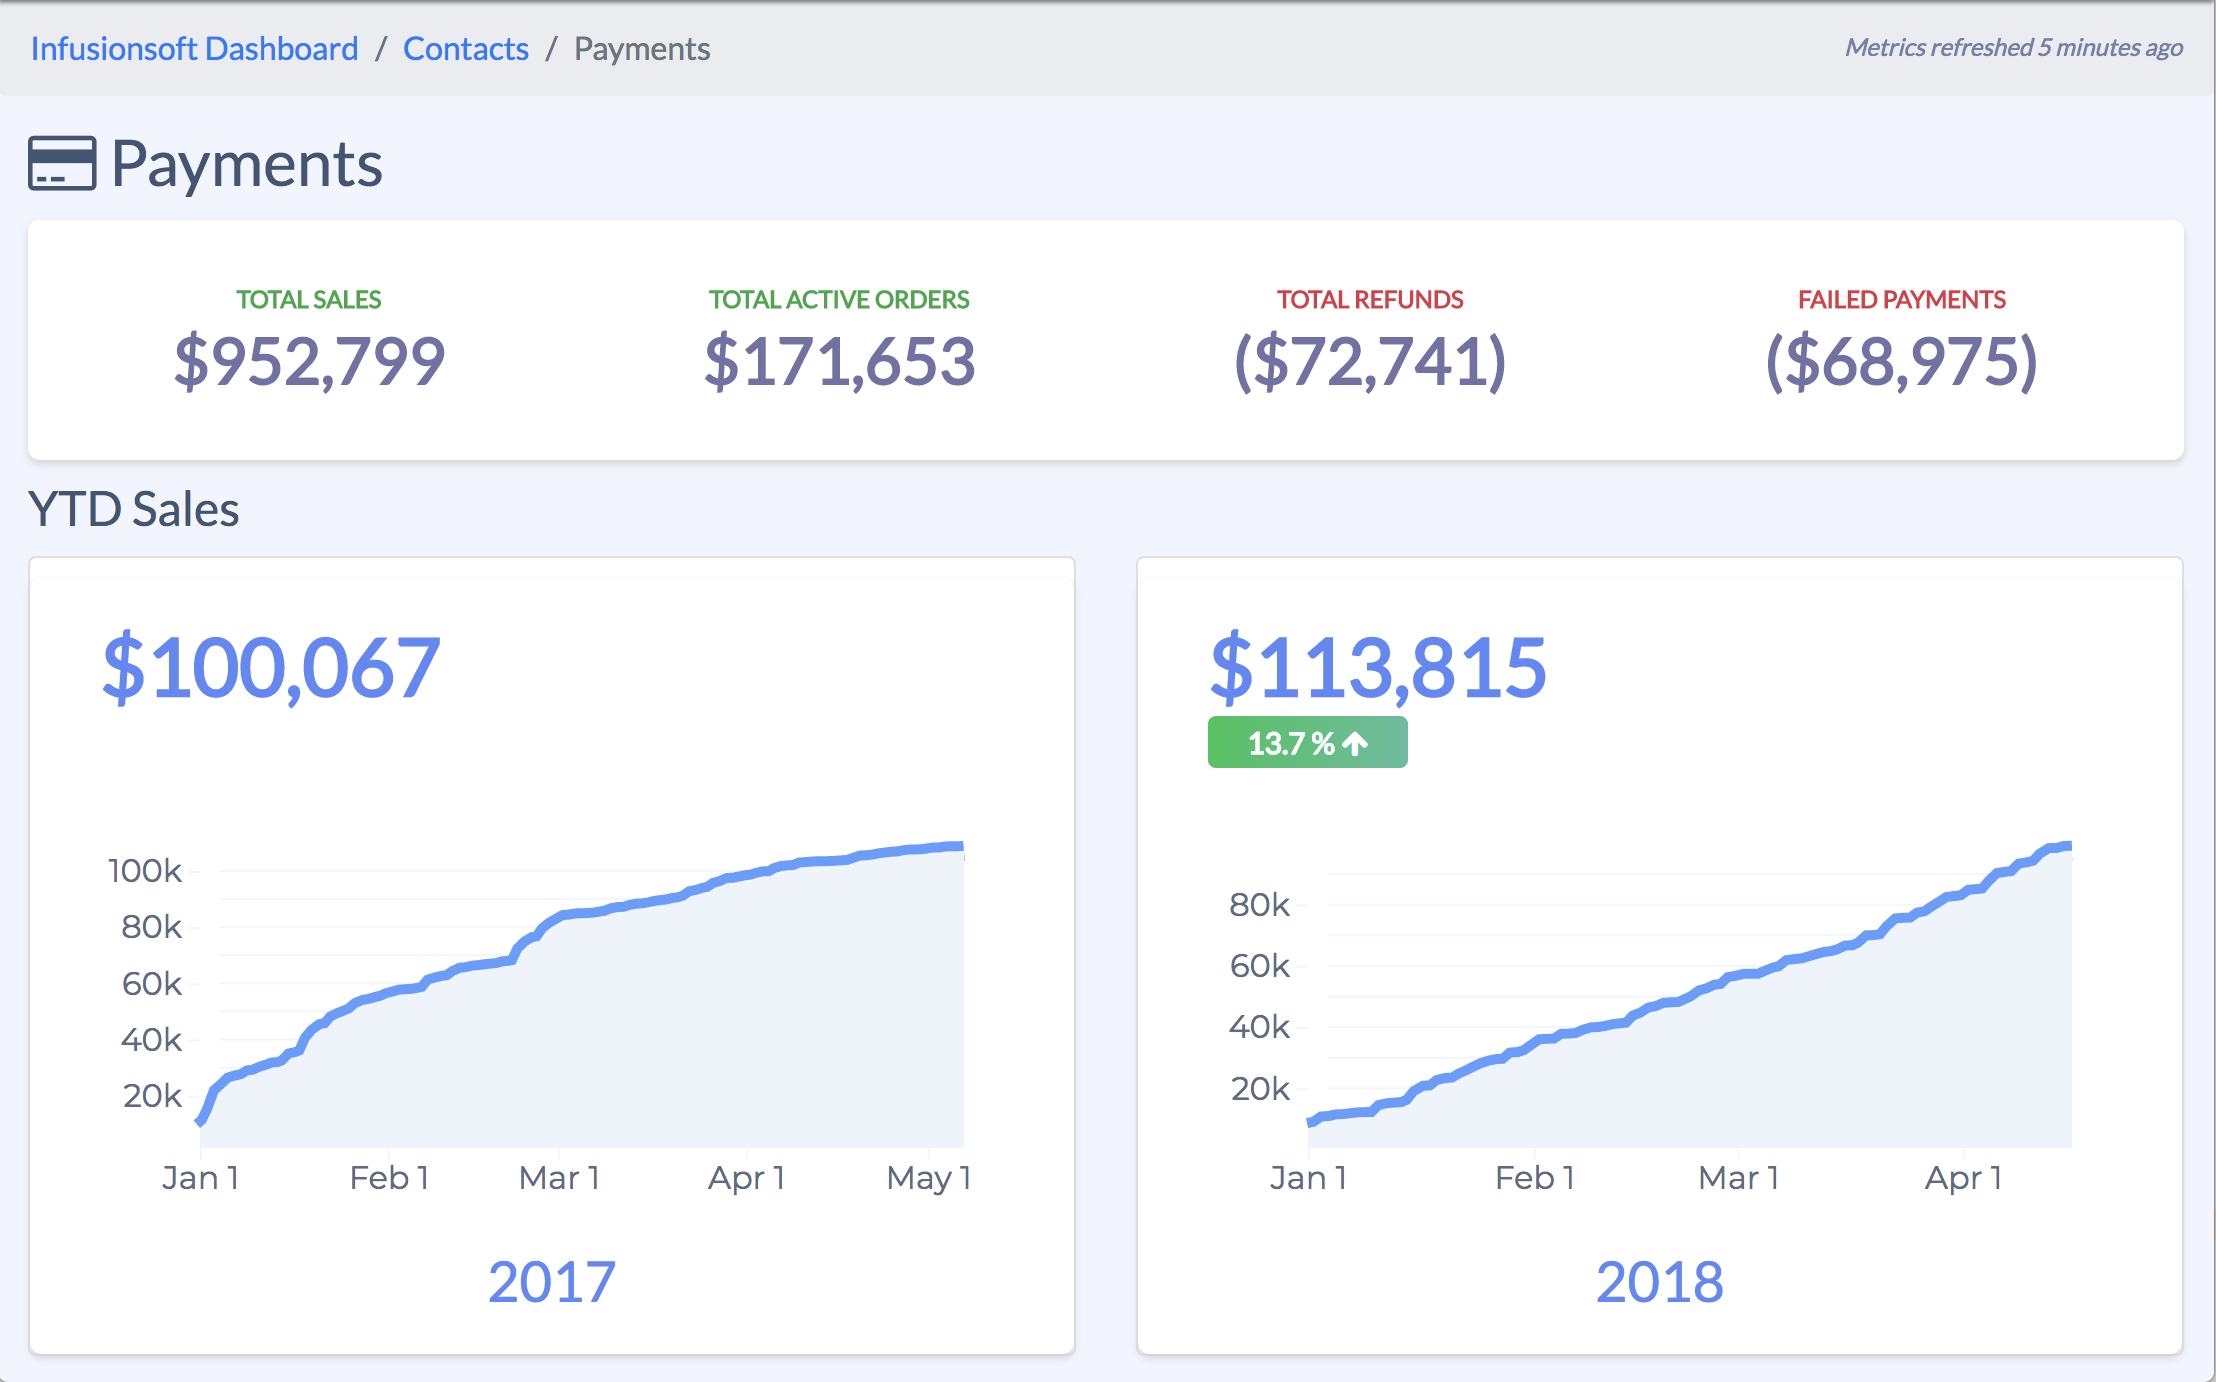 Infusionsoft payments dashboard